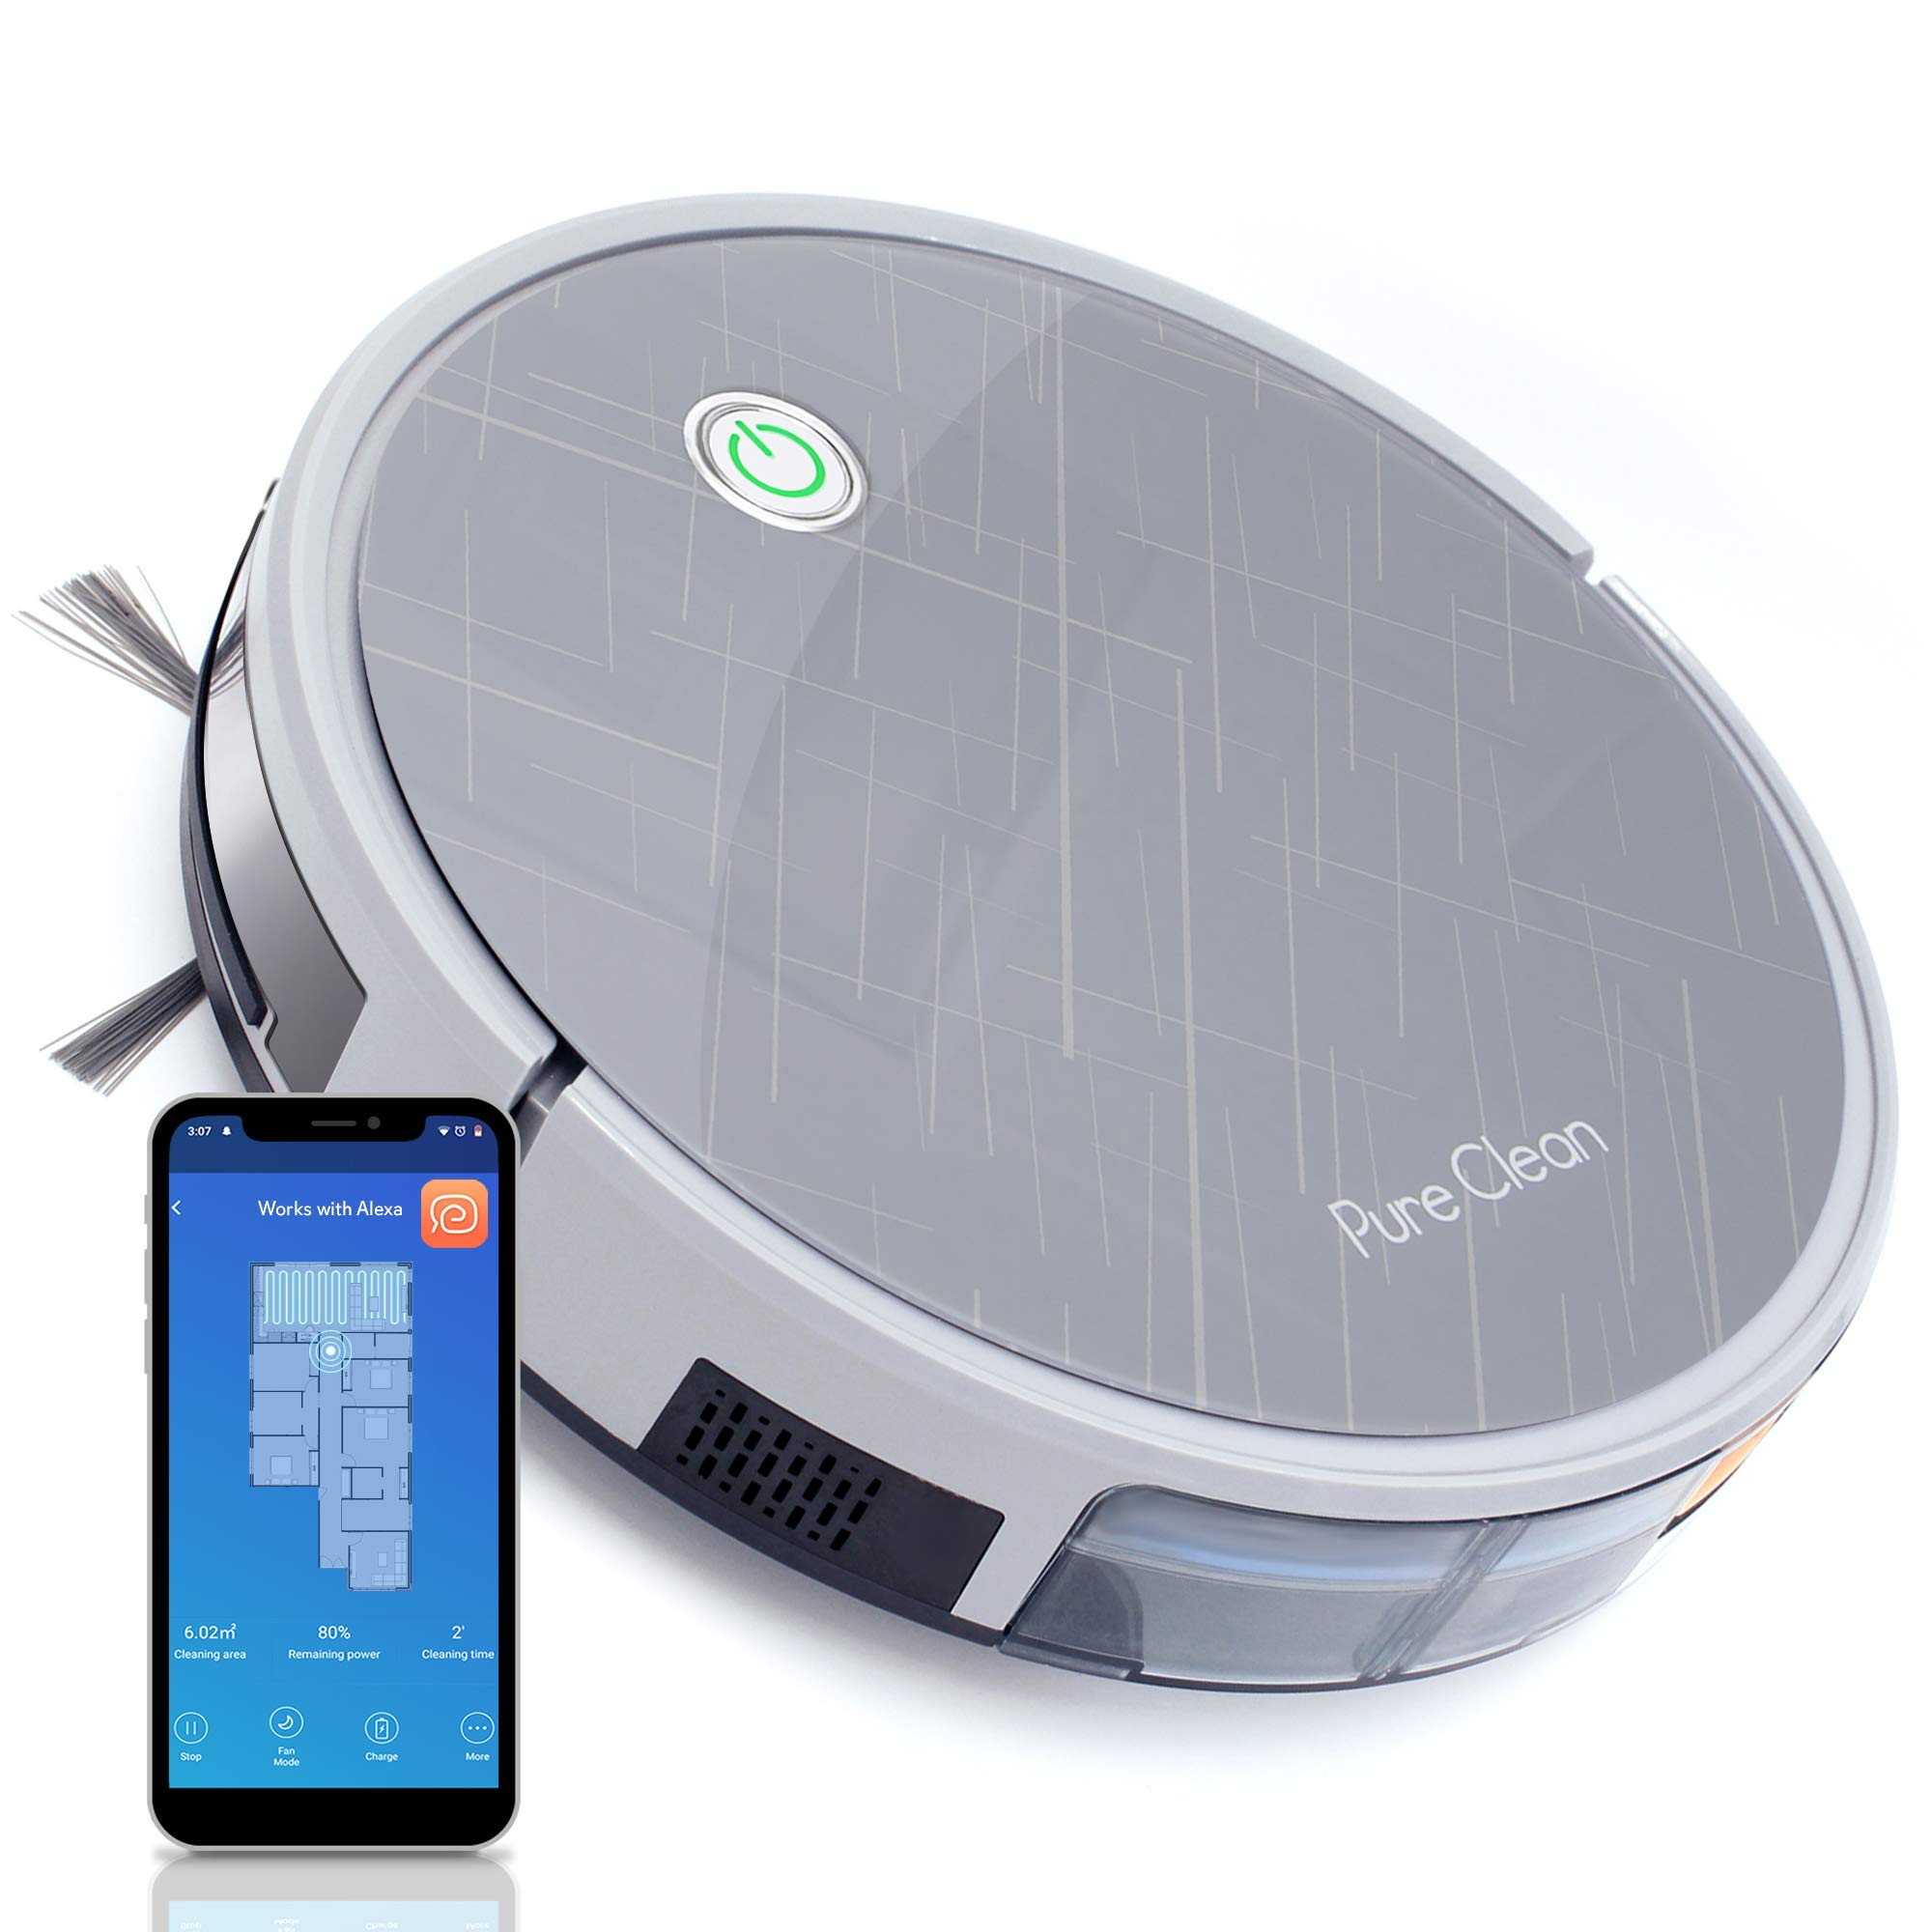 PureClean PUCRC660 Robot Vacuum Cleaner Alexa Compatible